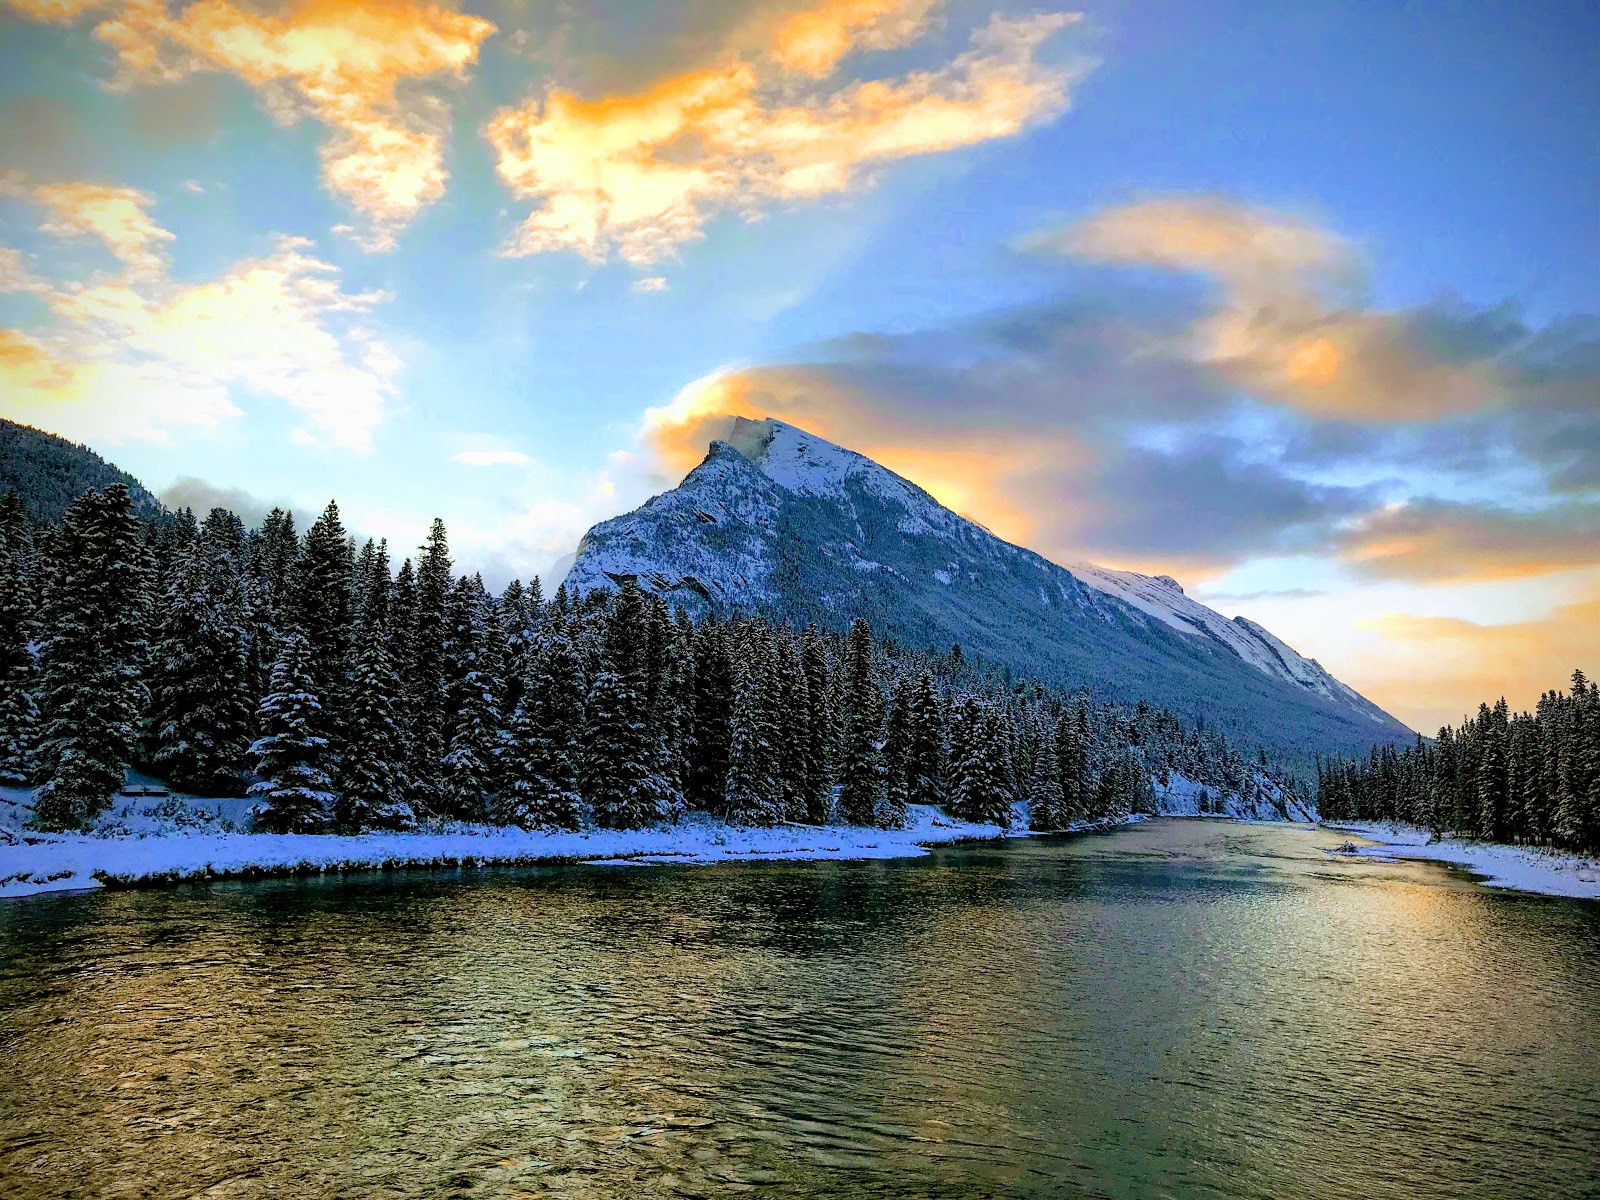 A mountain in Banff after sunrise